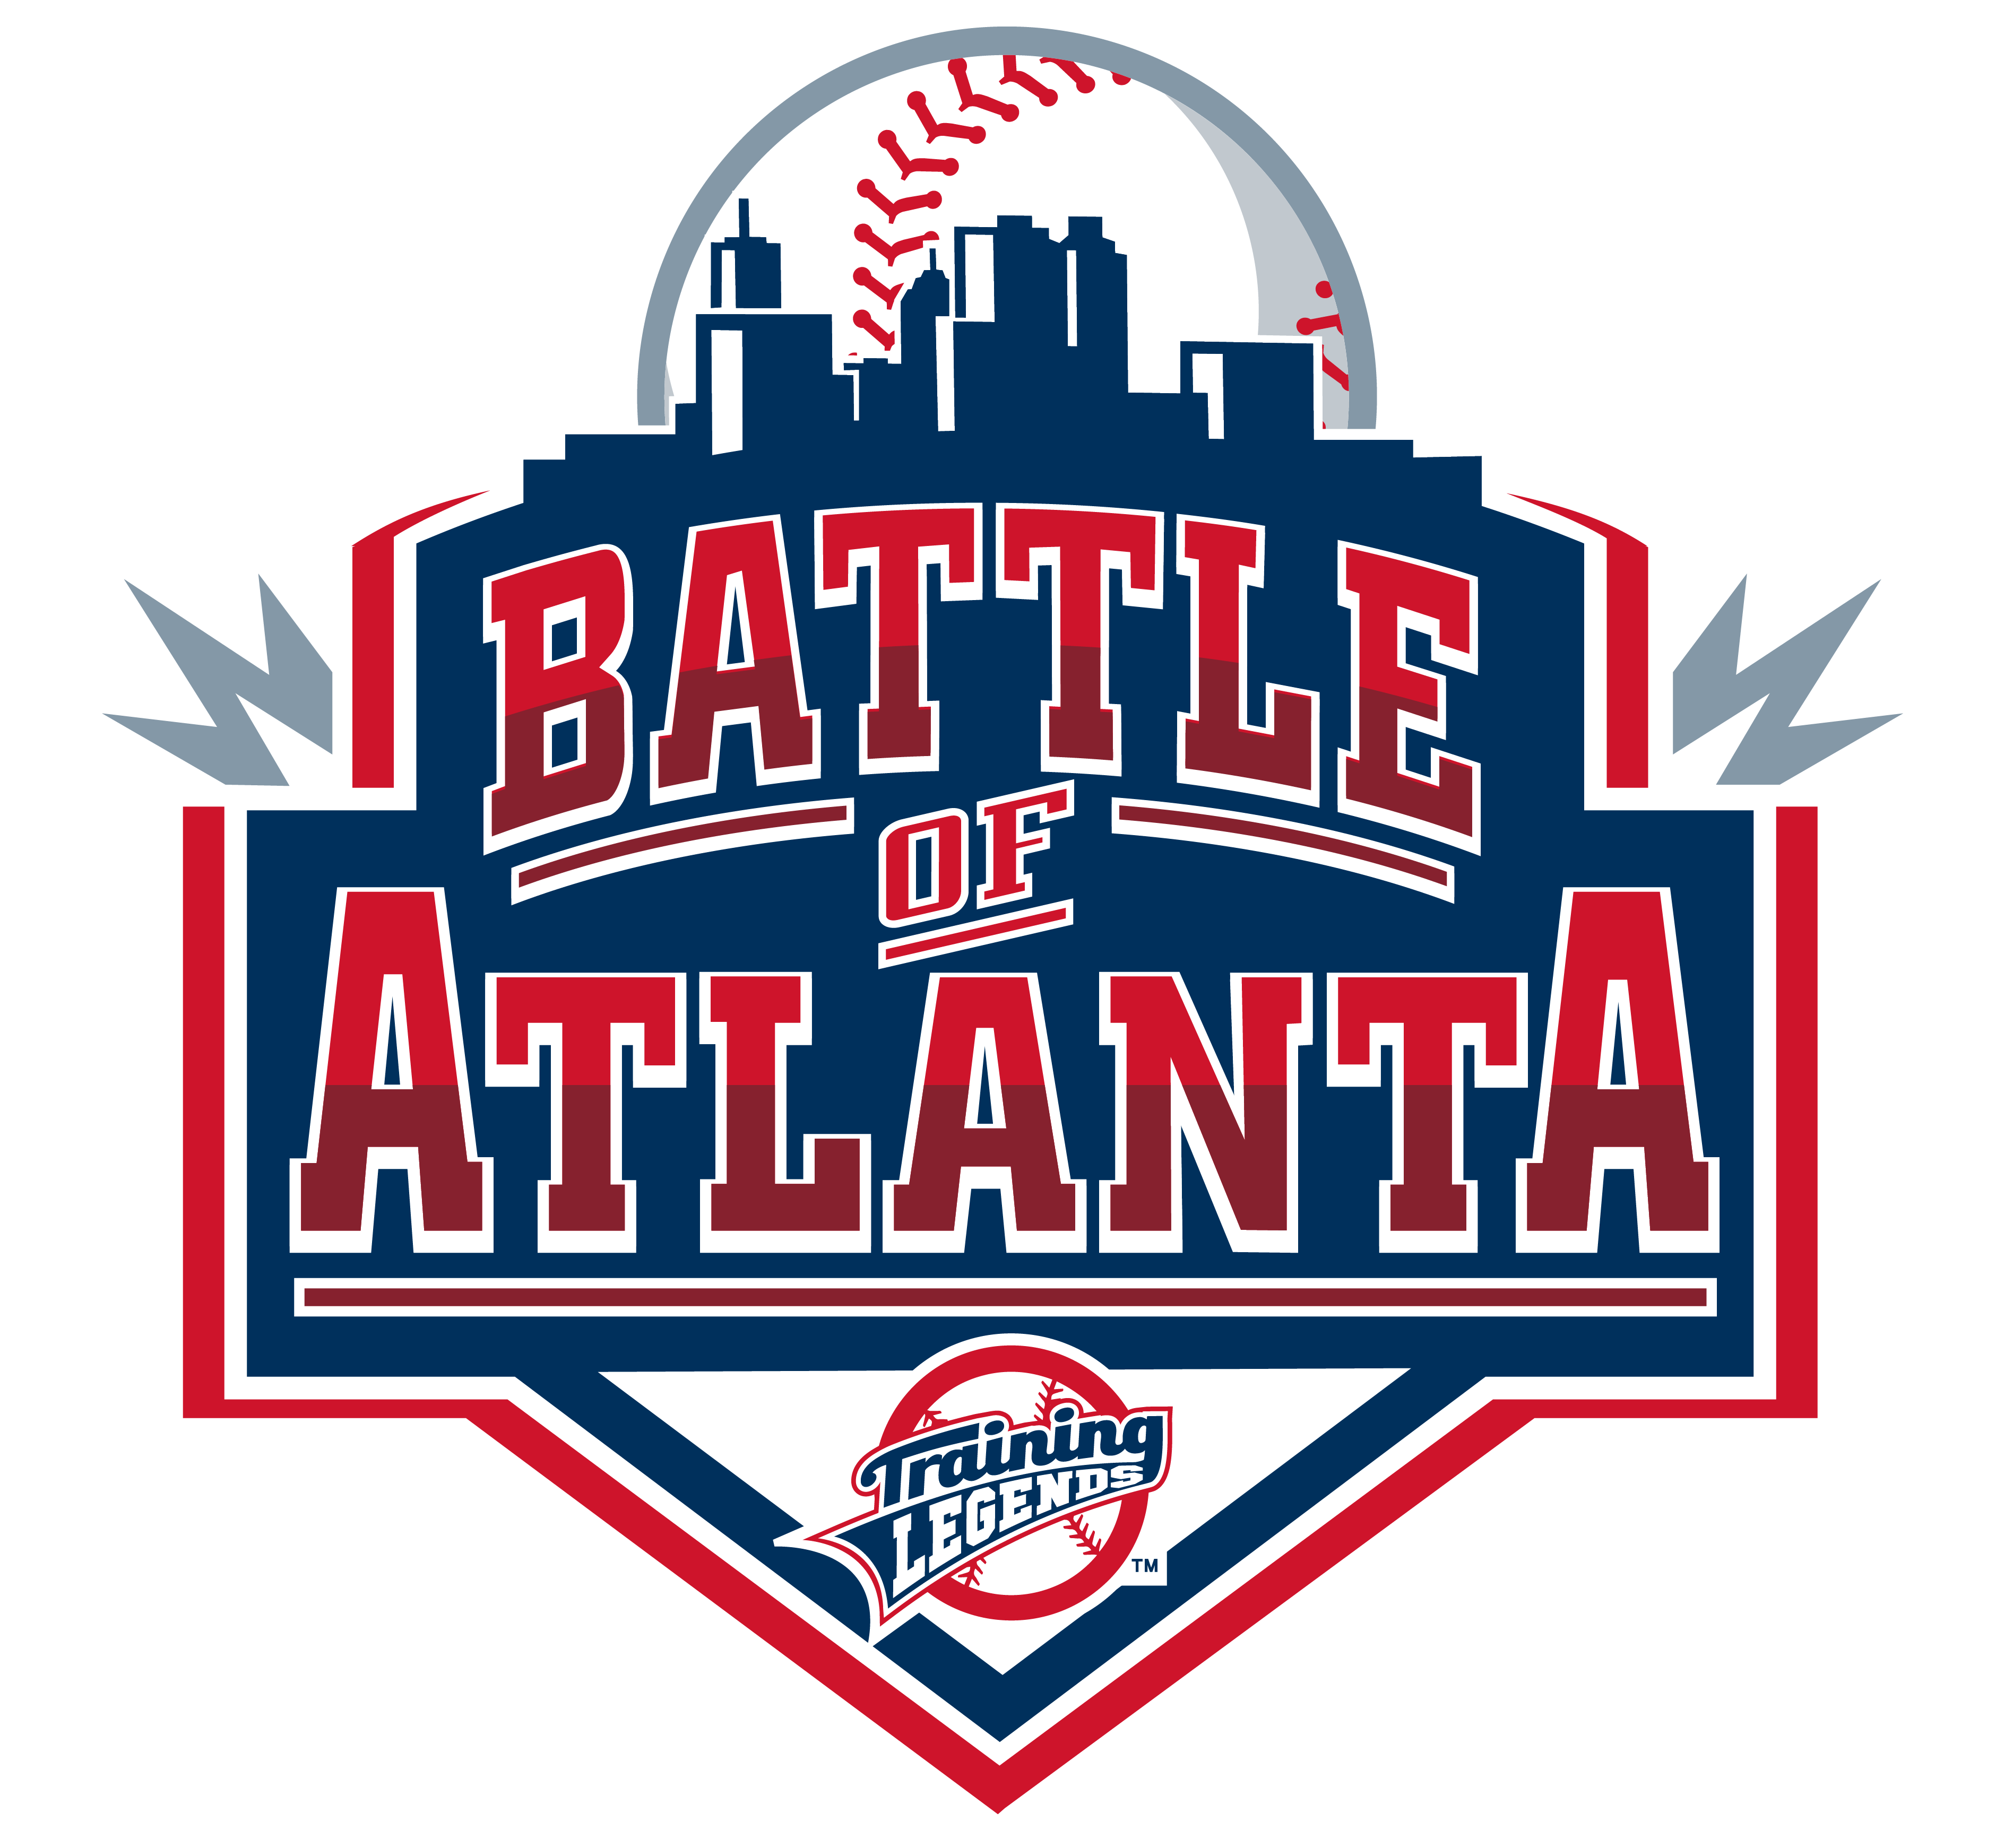 Battle of Atlanta (All Stars)